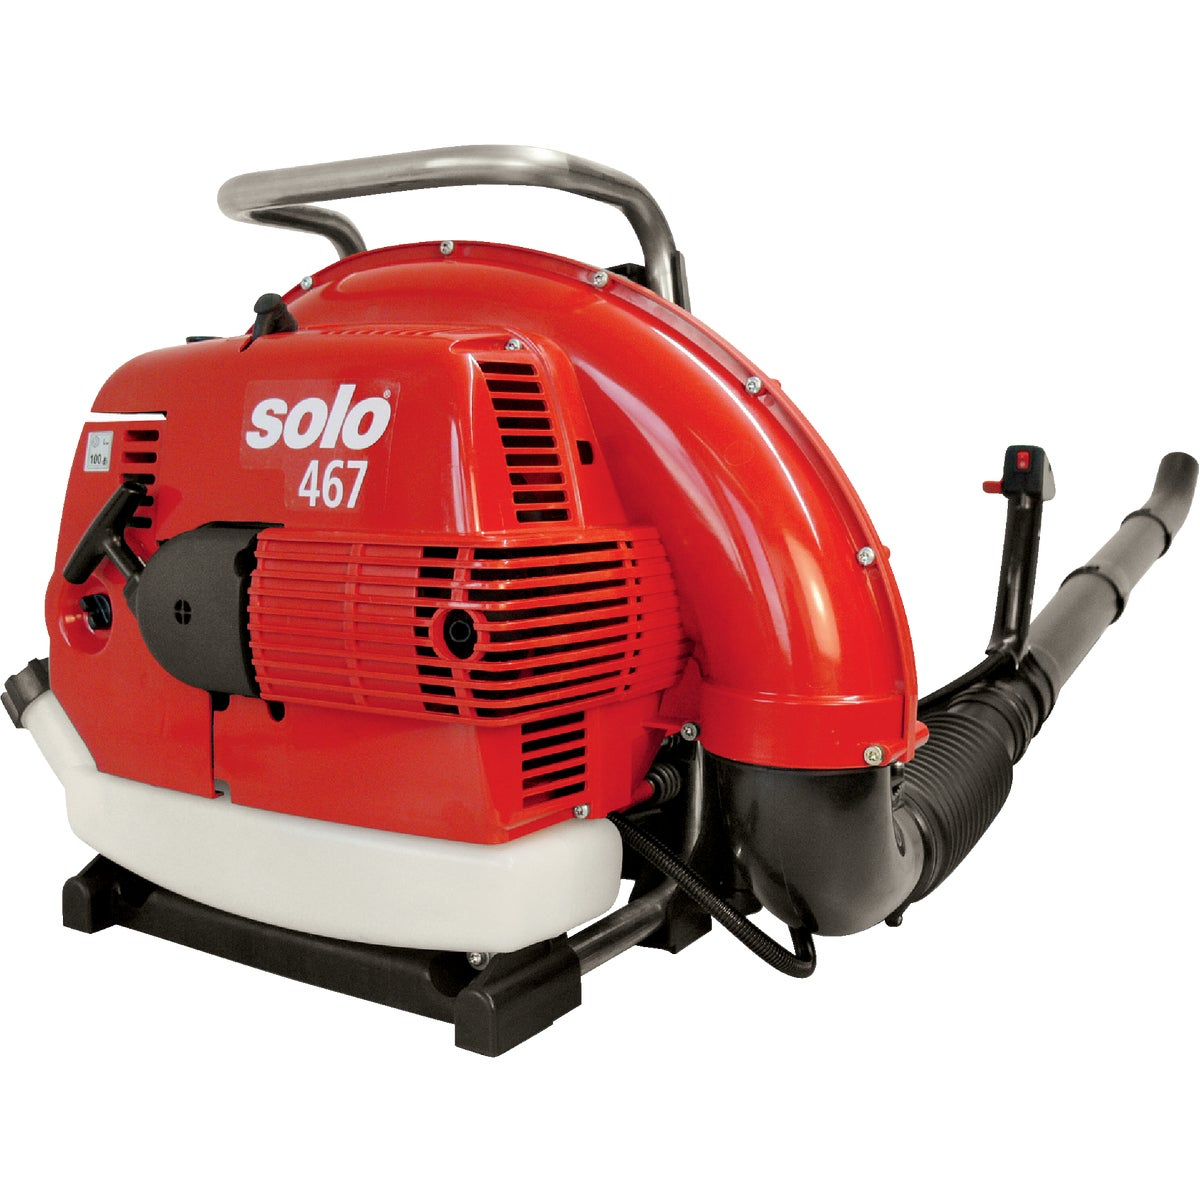 66.5CC BACKPACK BLOWER - 467 by Solo Inc